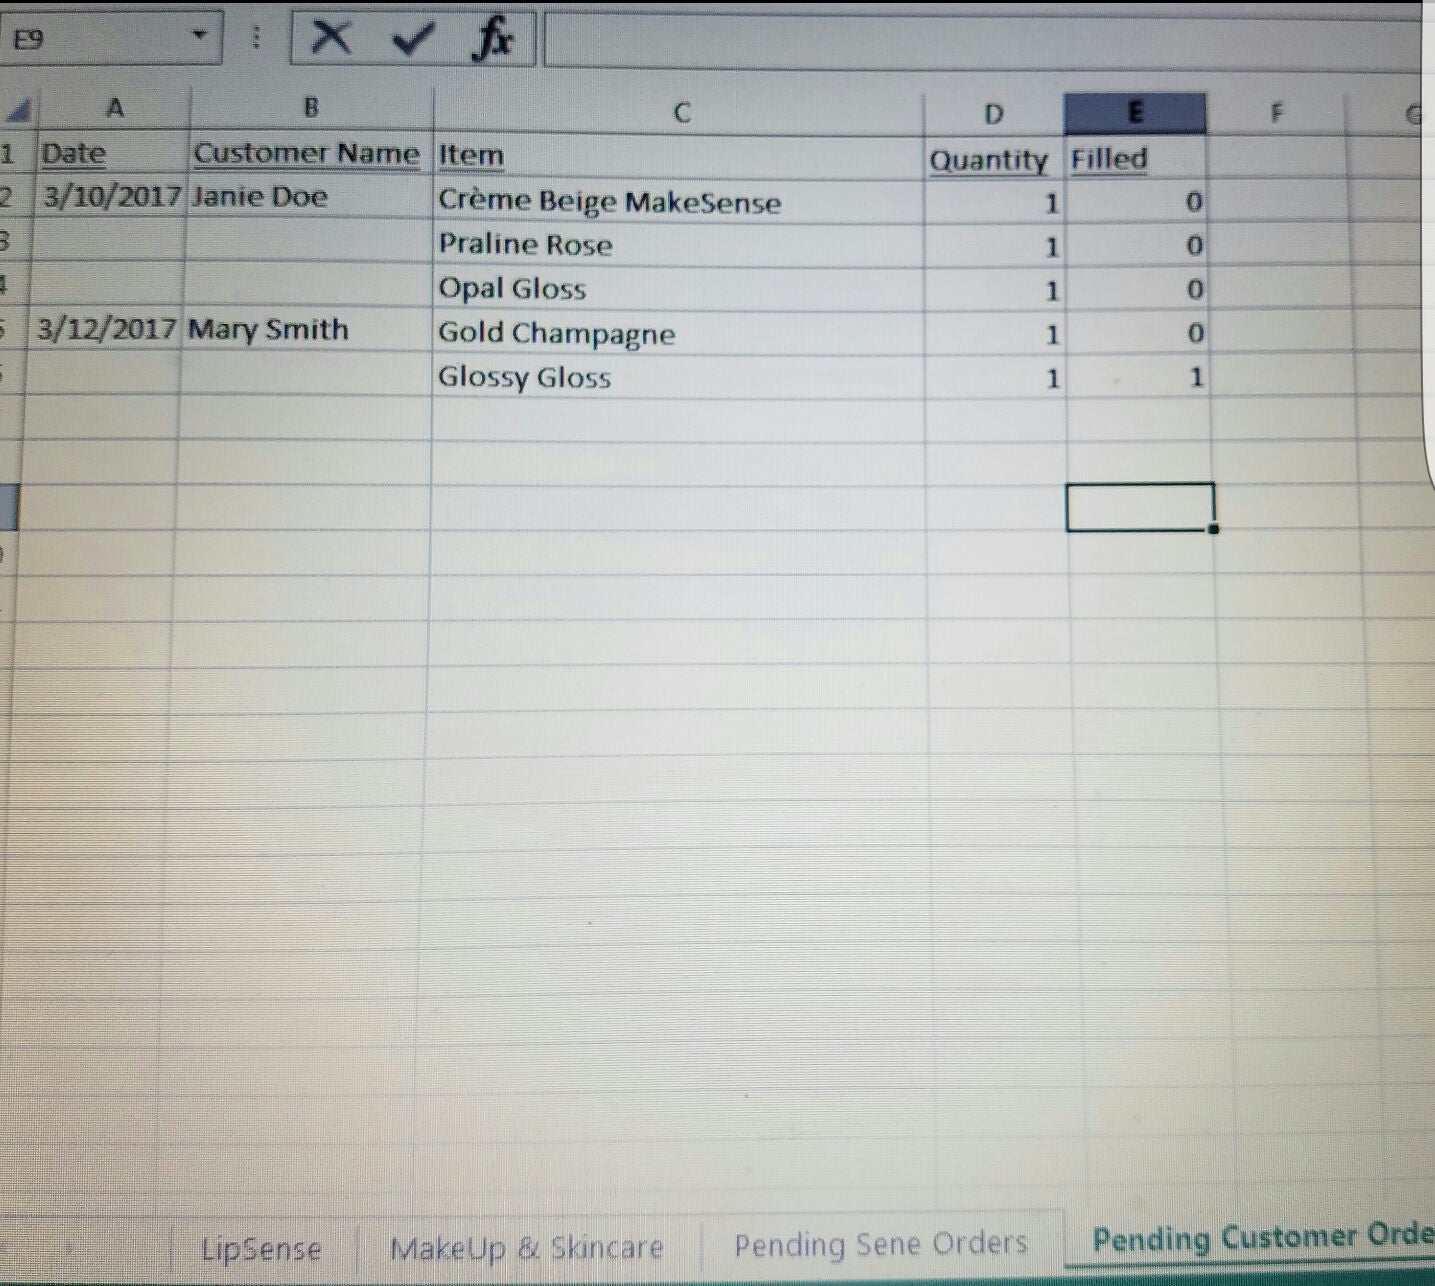 Inventory, Order & Trade Tracking Spreadsheet - Simple Business Tool ...